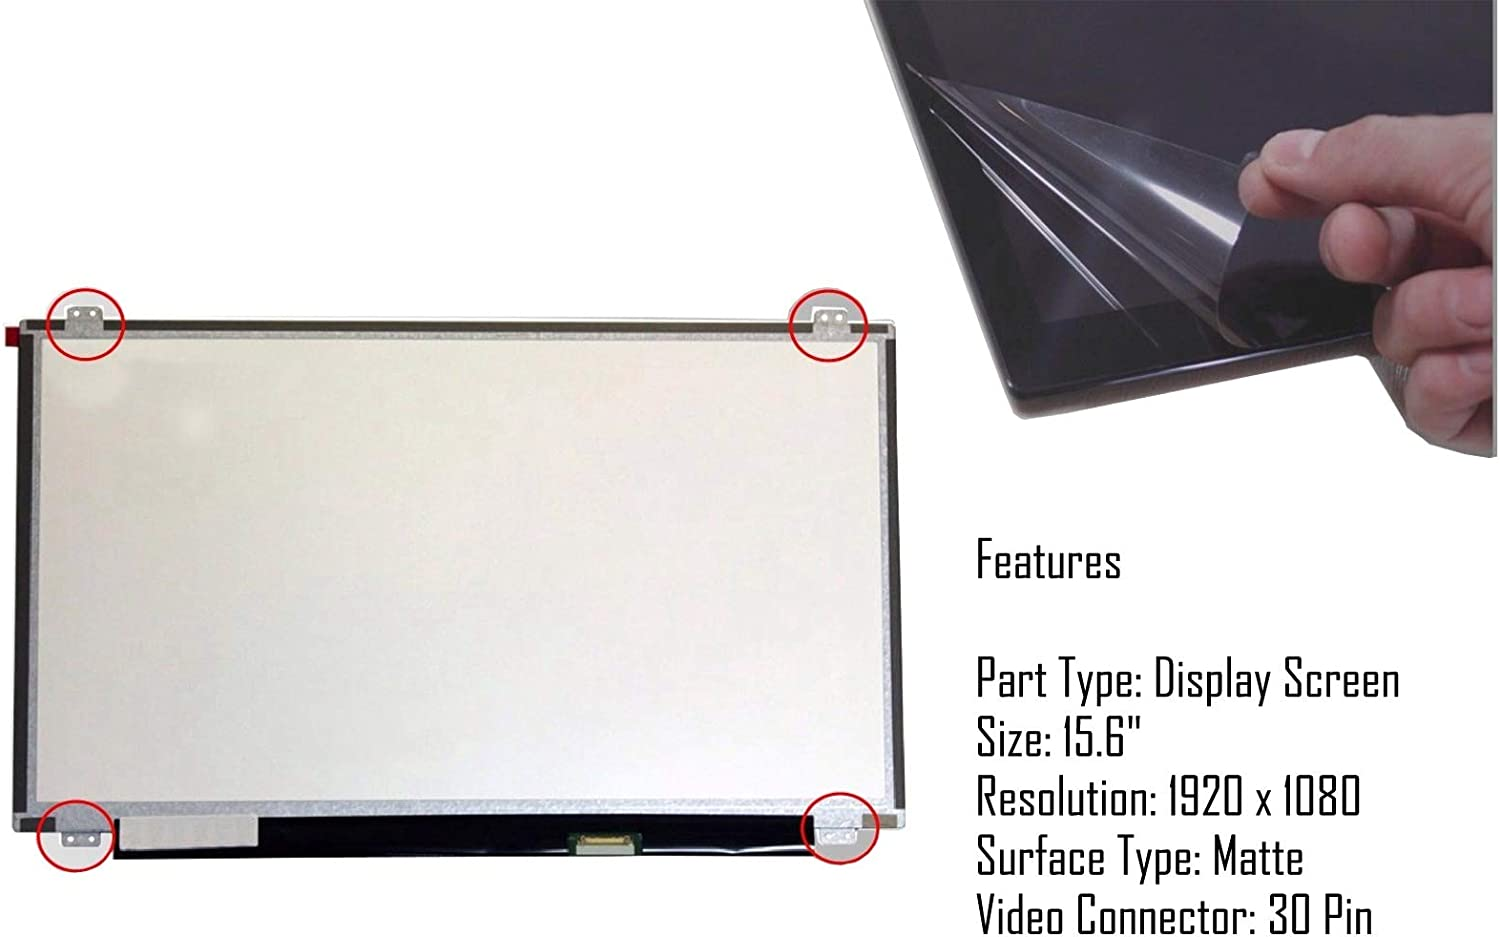 AJPARTS UK@ New Replacement For Acer ASPIRE 3 A315-31-P3SX,ASPIRE 3 A315-31-P6Q3,ASPIRE 3 A315-31-P72U Laptop Screen 15.6 Slim LED LCD FHD 1920 X 1080 Display Razor 30 Pin Matte Panel Non Touch